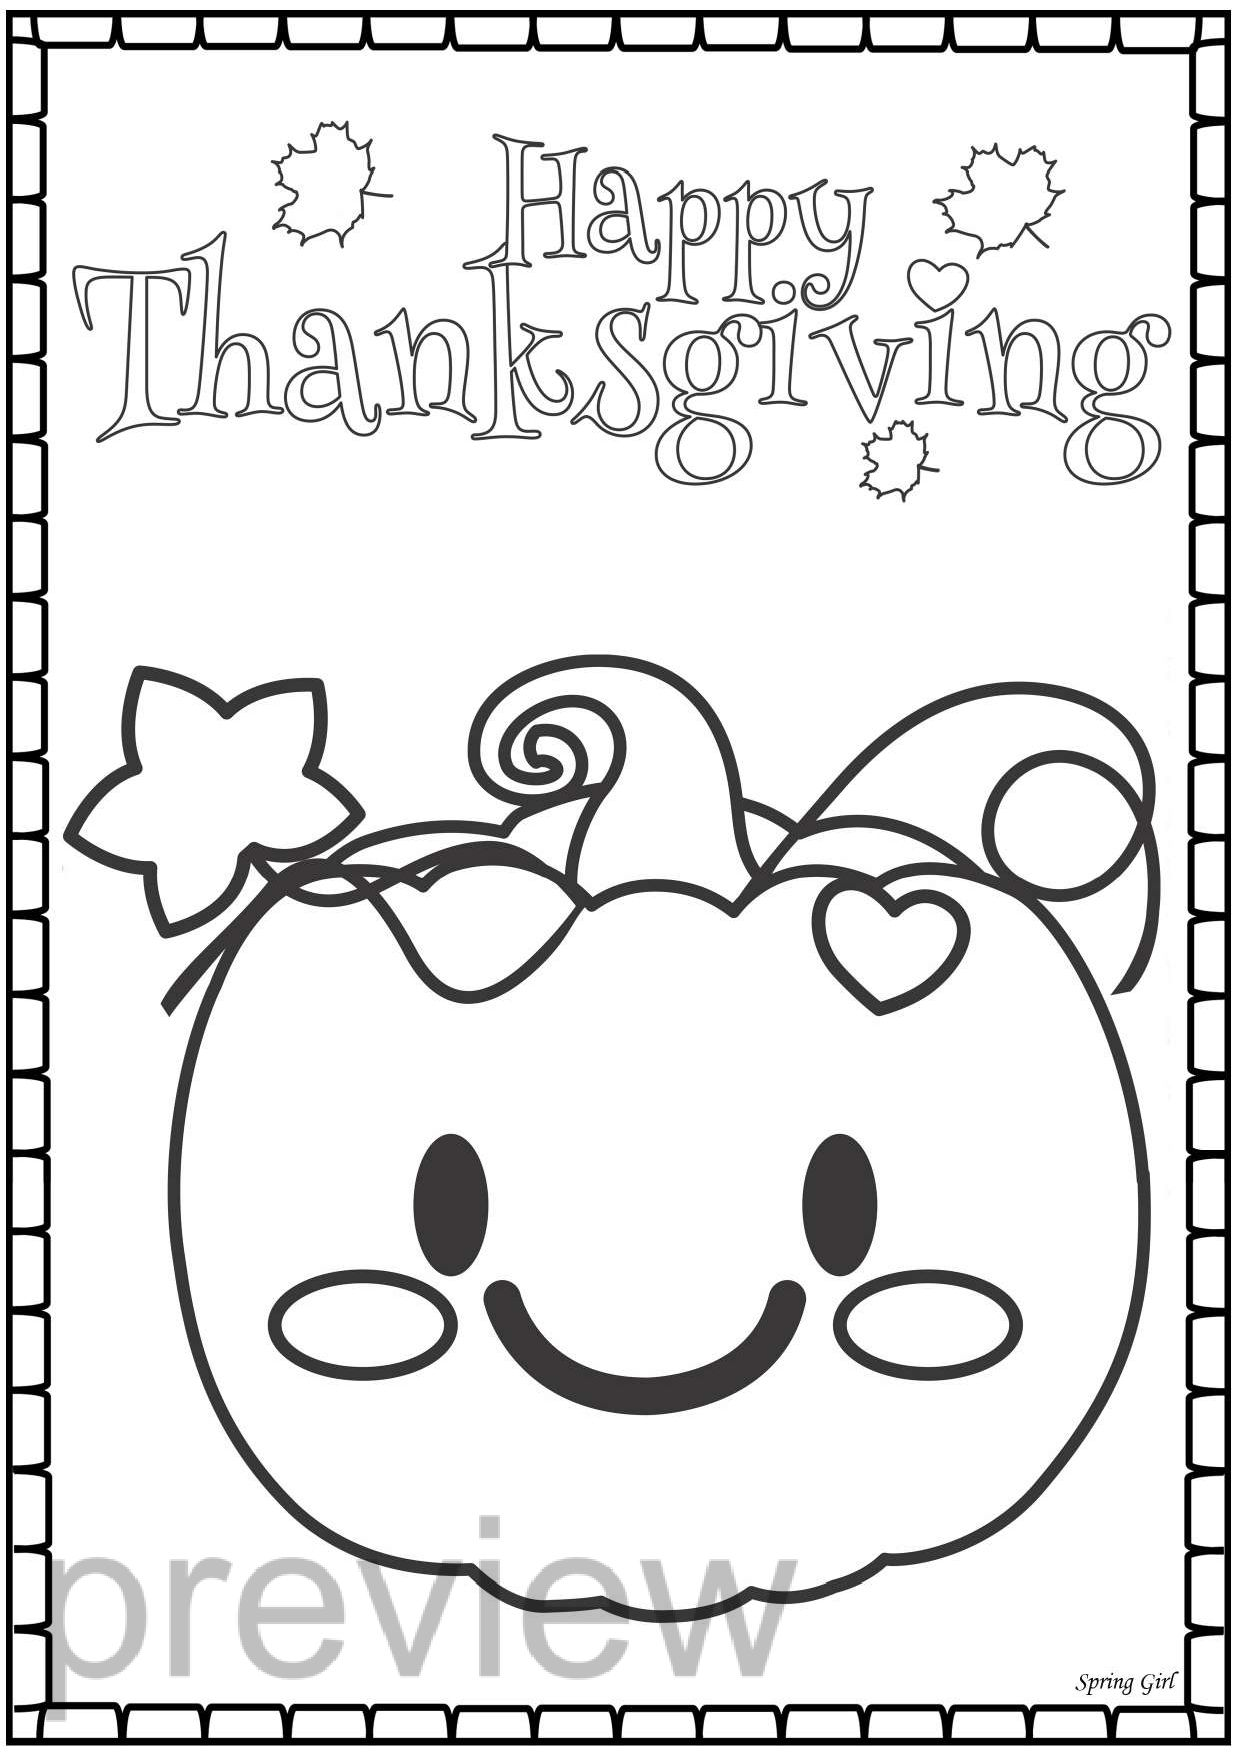 40 FREE Thanksgiving Coloring Pages for Adults & Kids - Edventures ... | 1755x1240